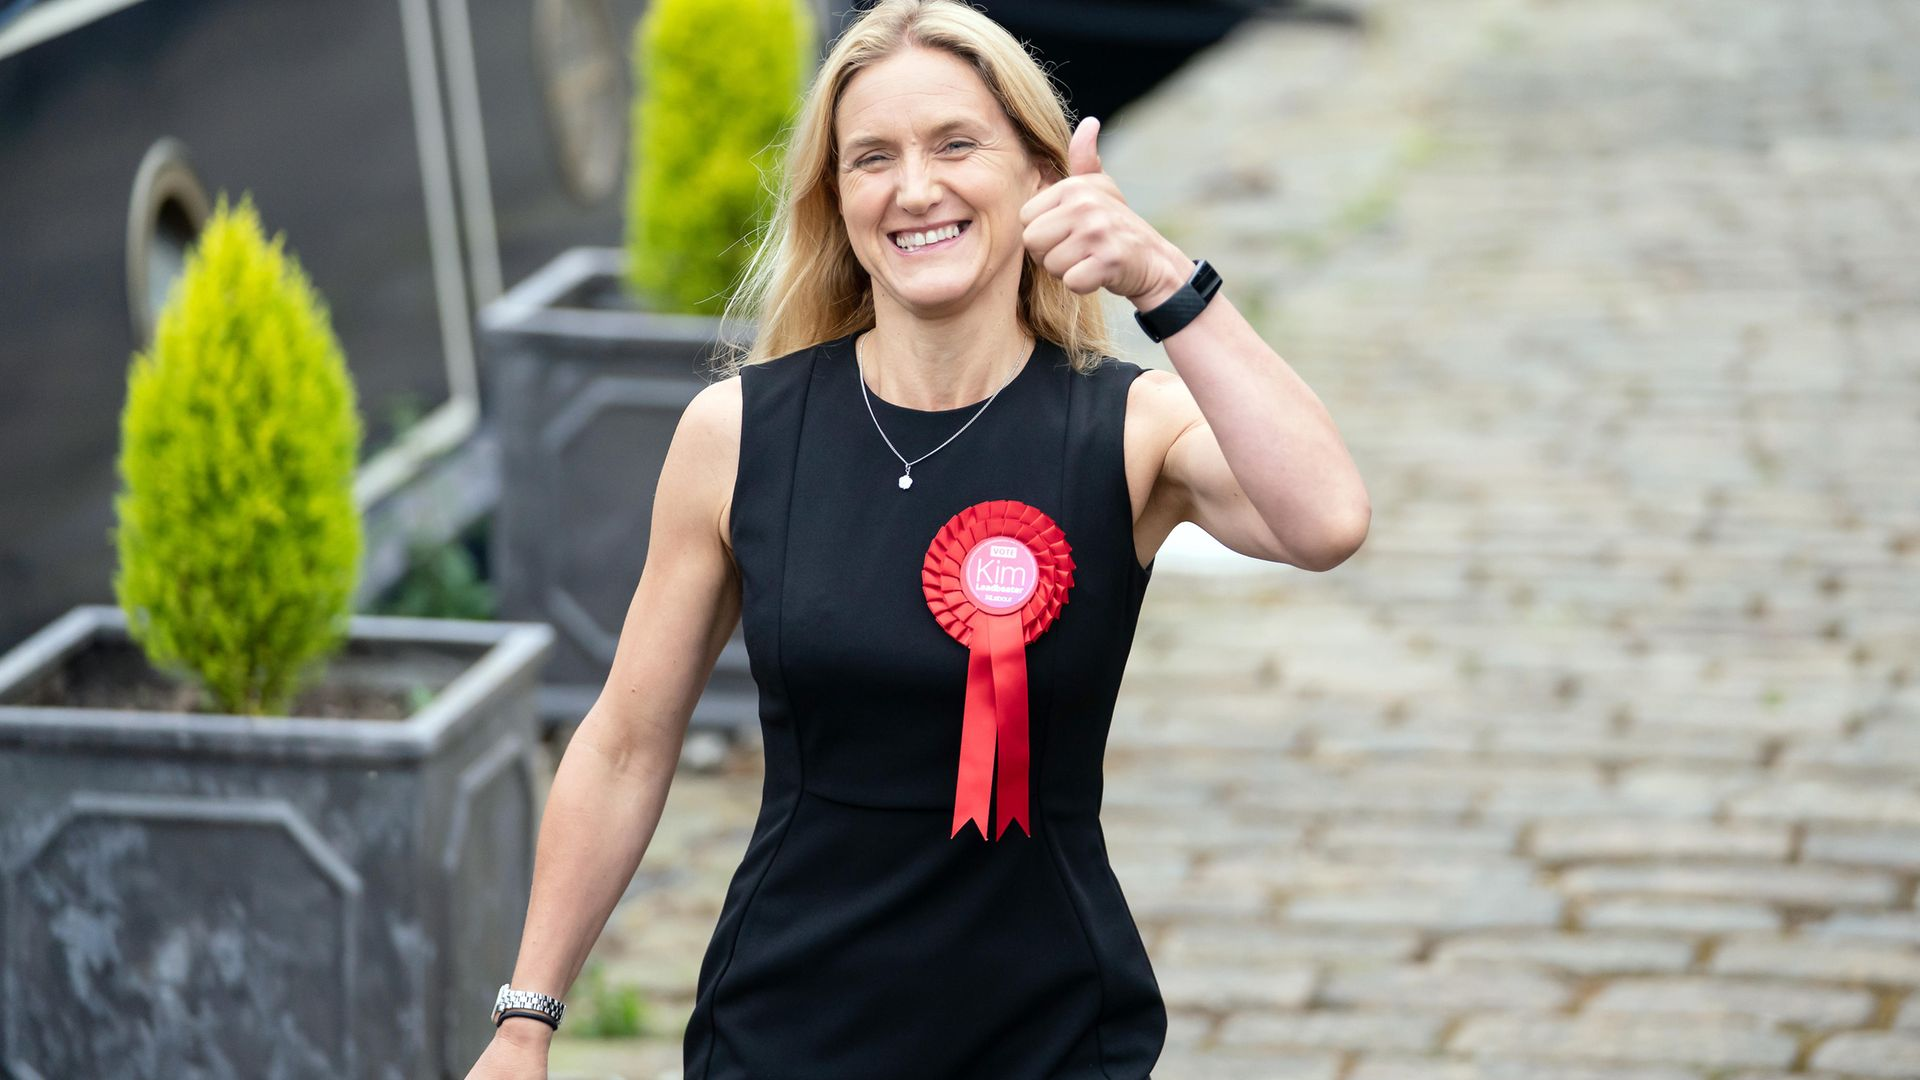 Kim Leadbeater walks along the canal path in Huddersfield after winning the Batley and Spen by-election and now representing the seat previously held by her sister Jo Cox, who was murdered in the constituency in 2016. Picture date: Friday July 2, 2021. - Credit: PA